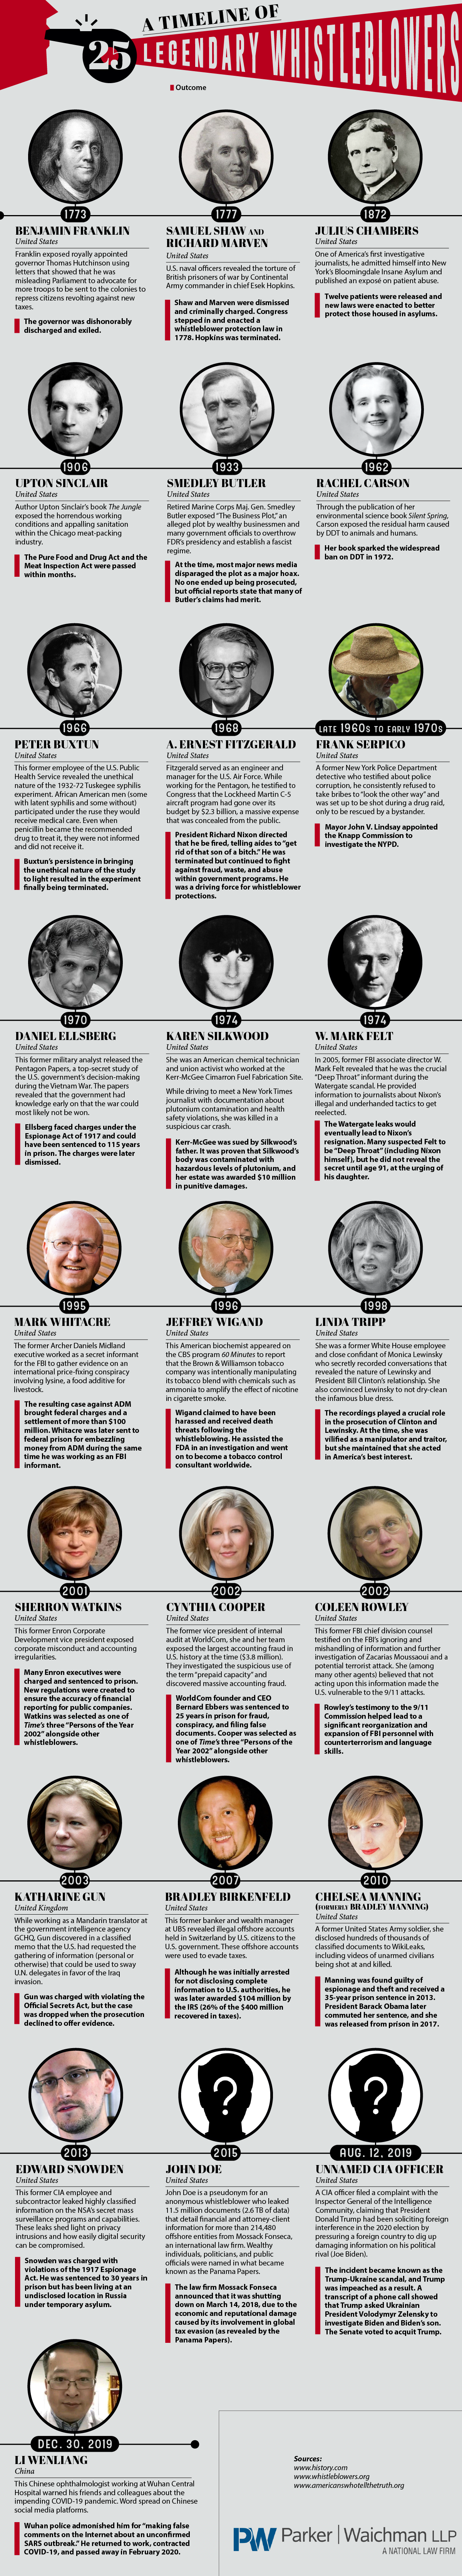 A Timeline of Legendary Whistleblowers - YourLawyer.com - Infographic